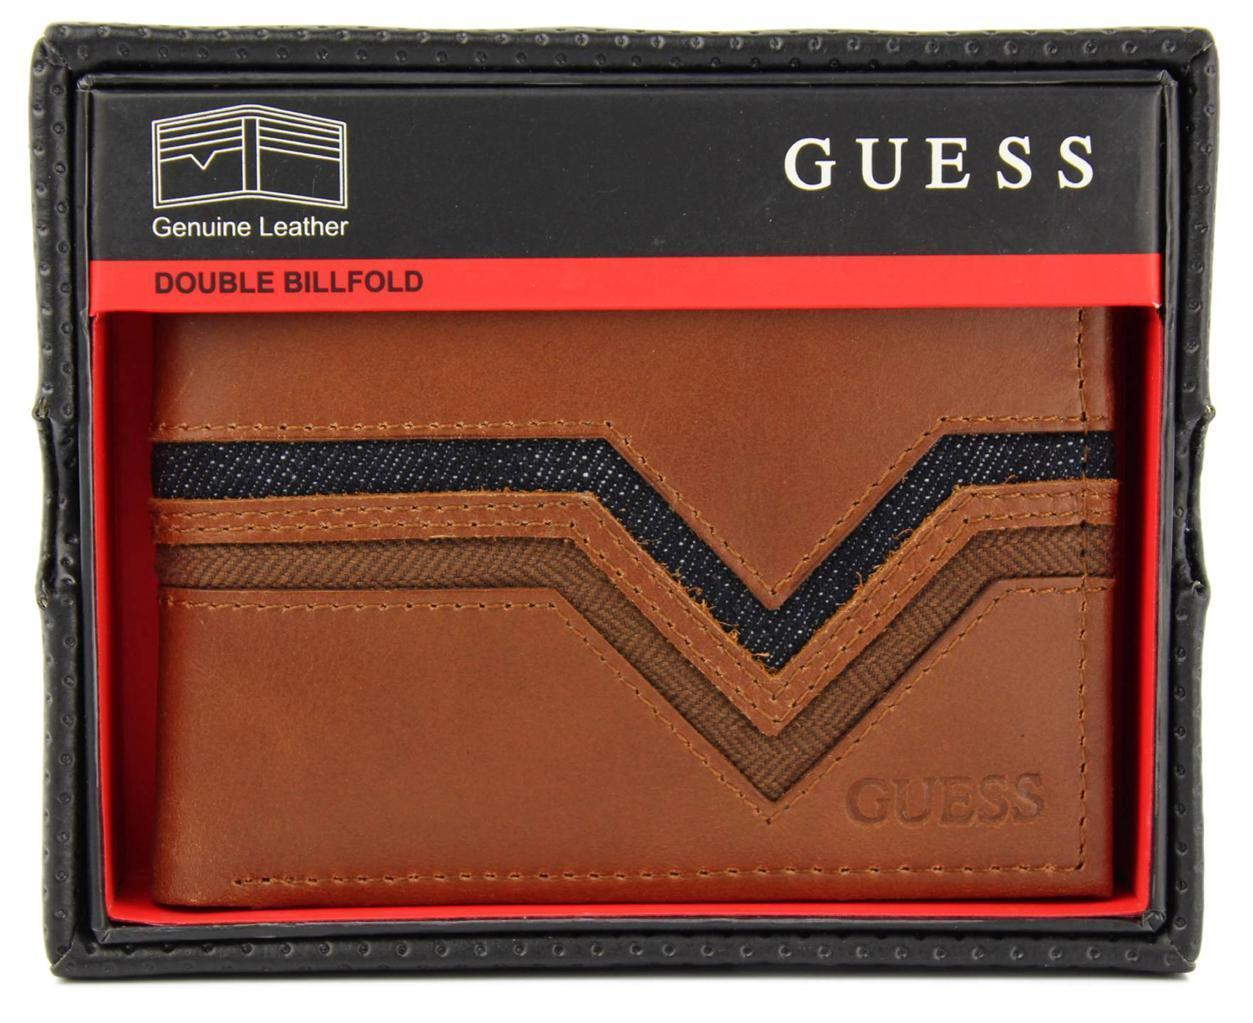 NEW GUESS MEN'S LEATHER CREDIT CARD ID WALLET PASSCASE BIFOLD TAN 0465/04